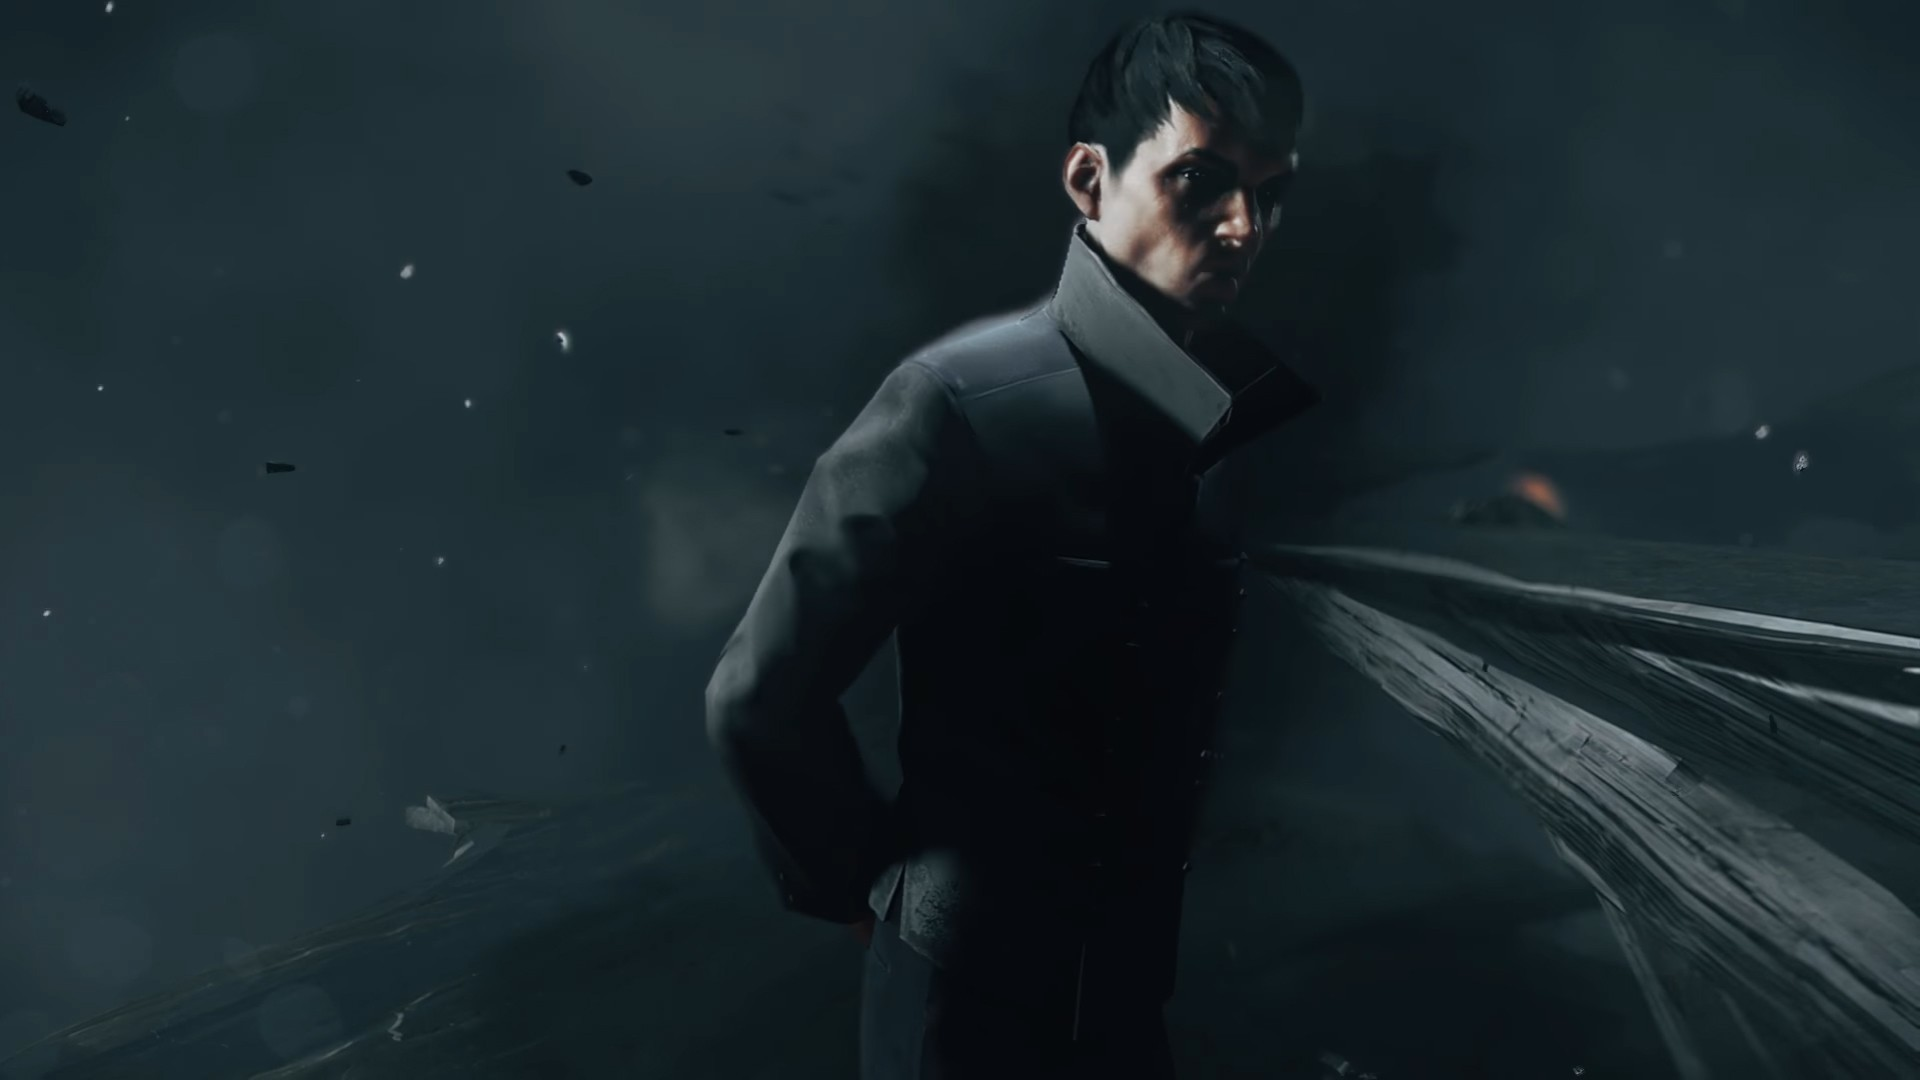 Dishonored Wallpaper 4k: Dishonored 2 Wallpapers (81+ Background Pictures